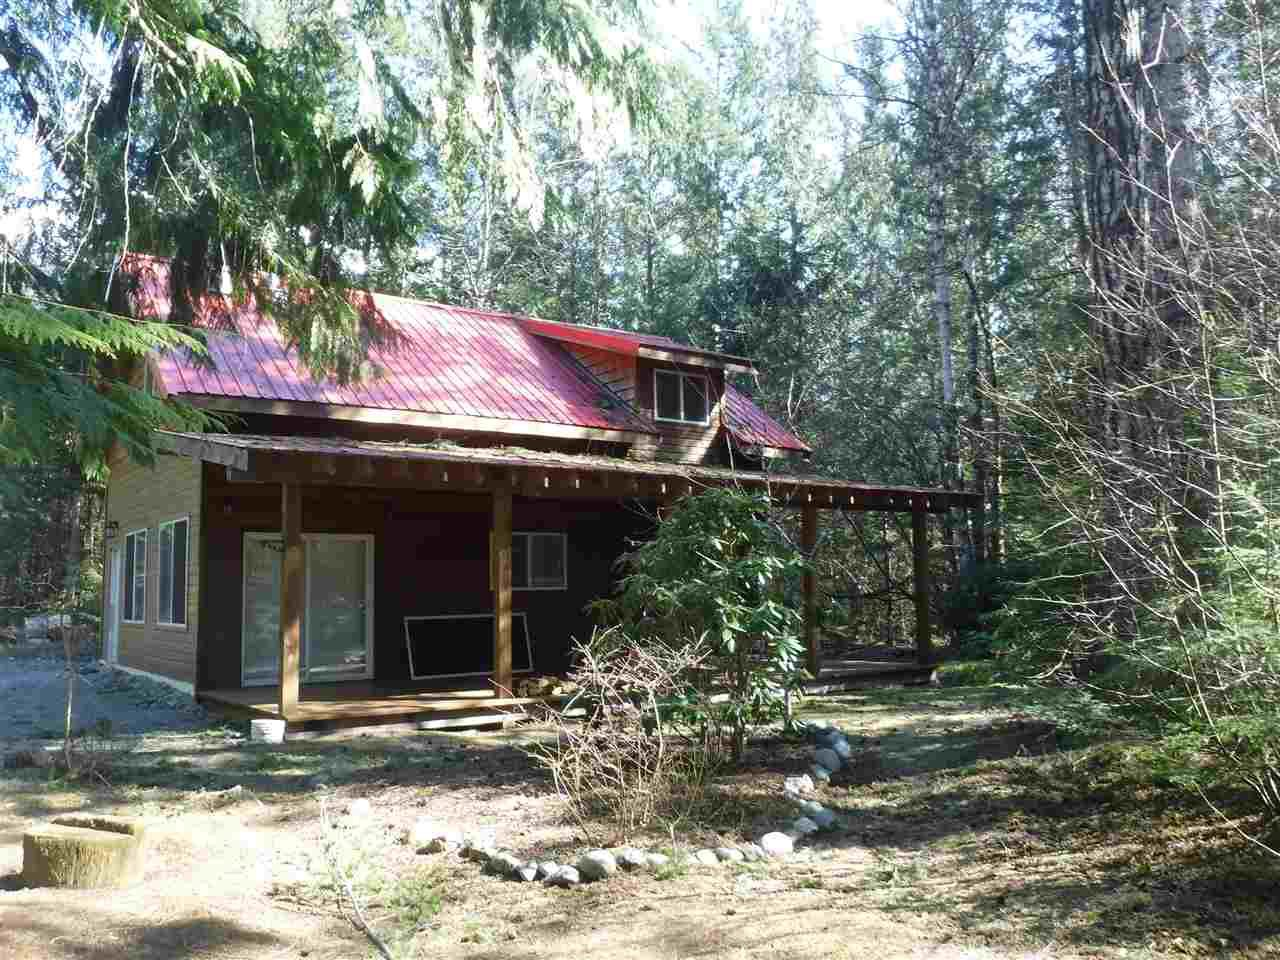 Main Photo: 2860 NE HALF MOON Drive in Bella Coola: Bella Coola/Hagensborg House for sale (Williams Lake (Zone 27))  : MLS®# R2451043